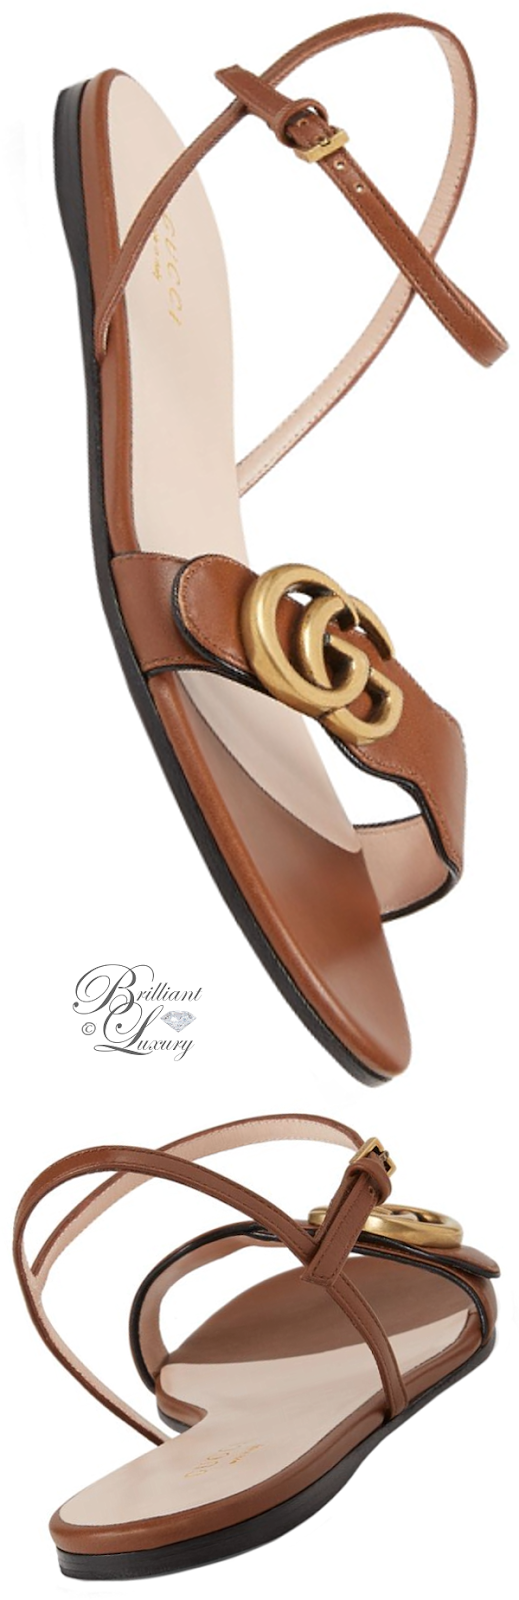 Brilliant Luxury ♦ Gucci Leather Double G Sandals